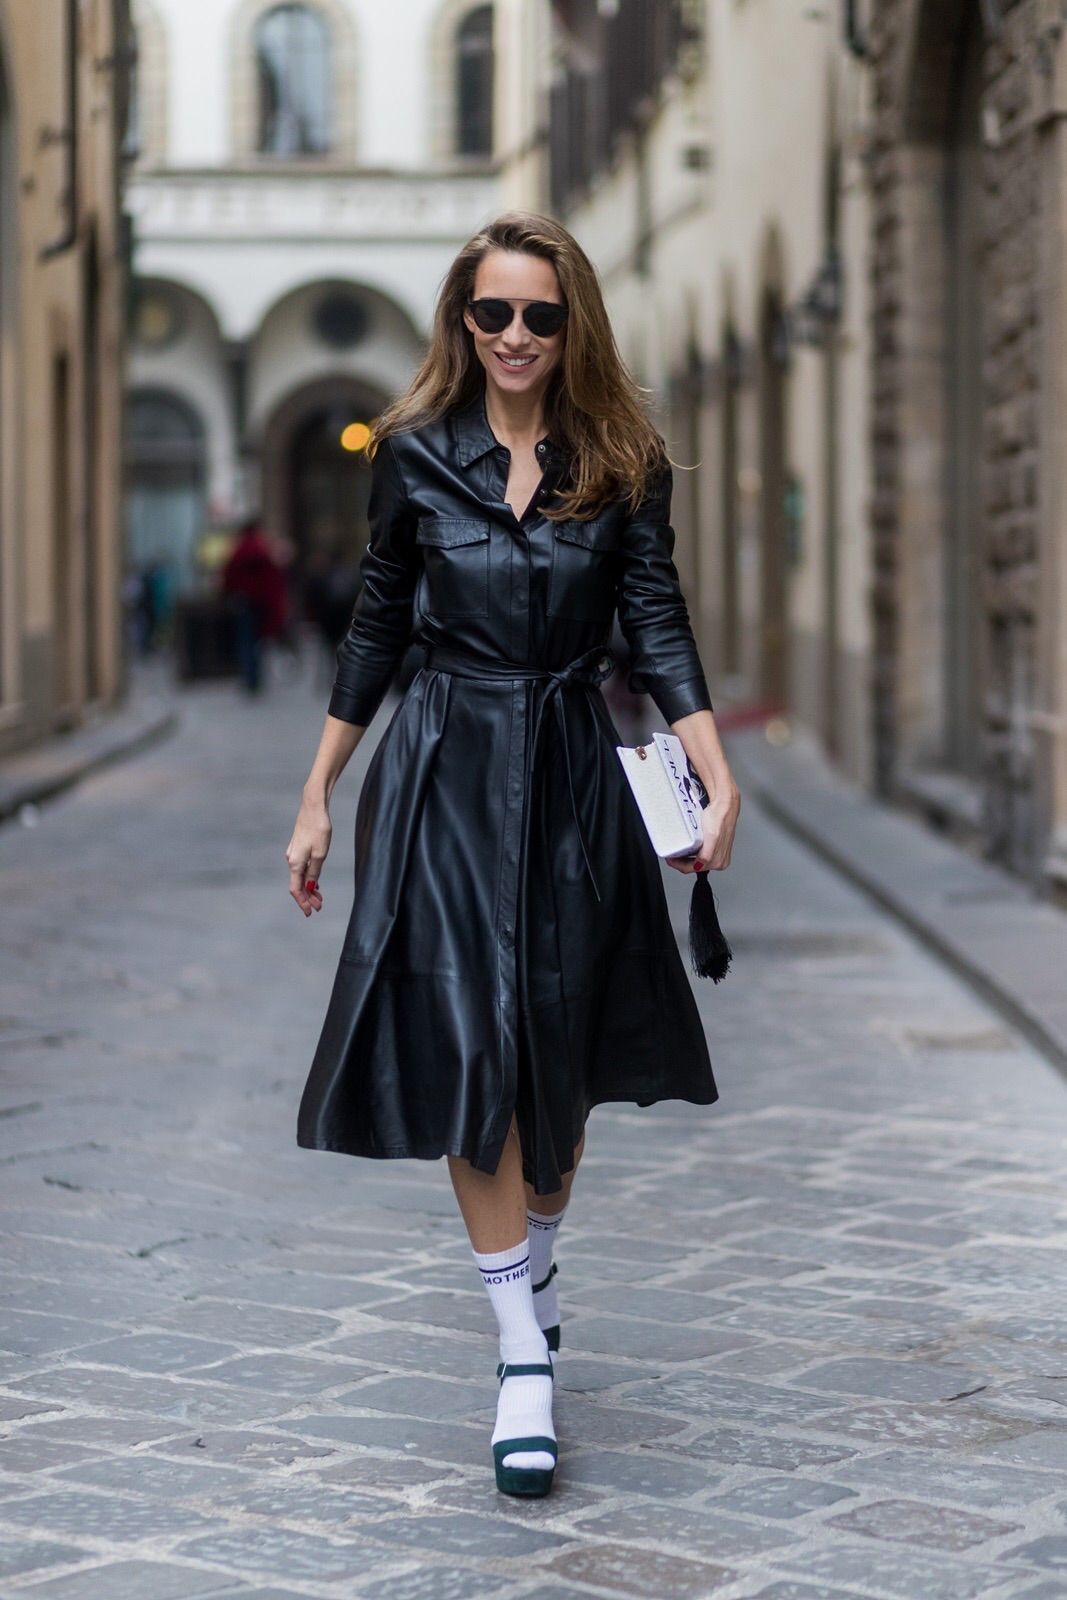 657de5d7 FLORENCE, ITALY - JANUARY 11: German fashion blogger and model Alexandra  Lapp, wearing a leather shirt dress from Set Fashion, white tennis socks  with ...